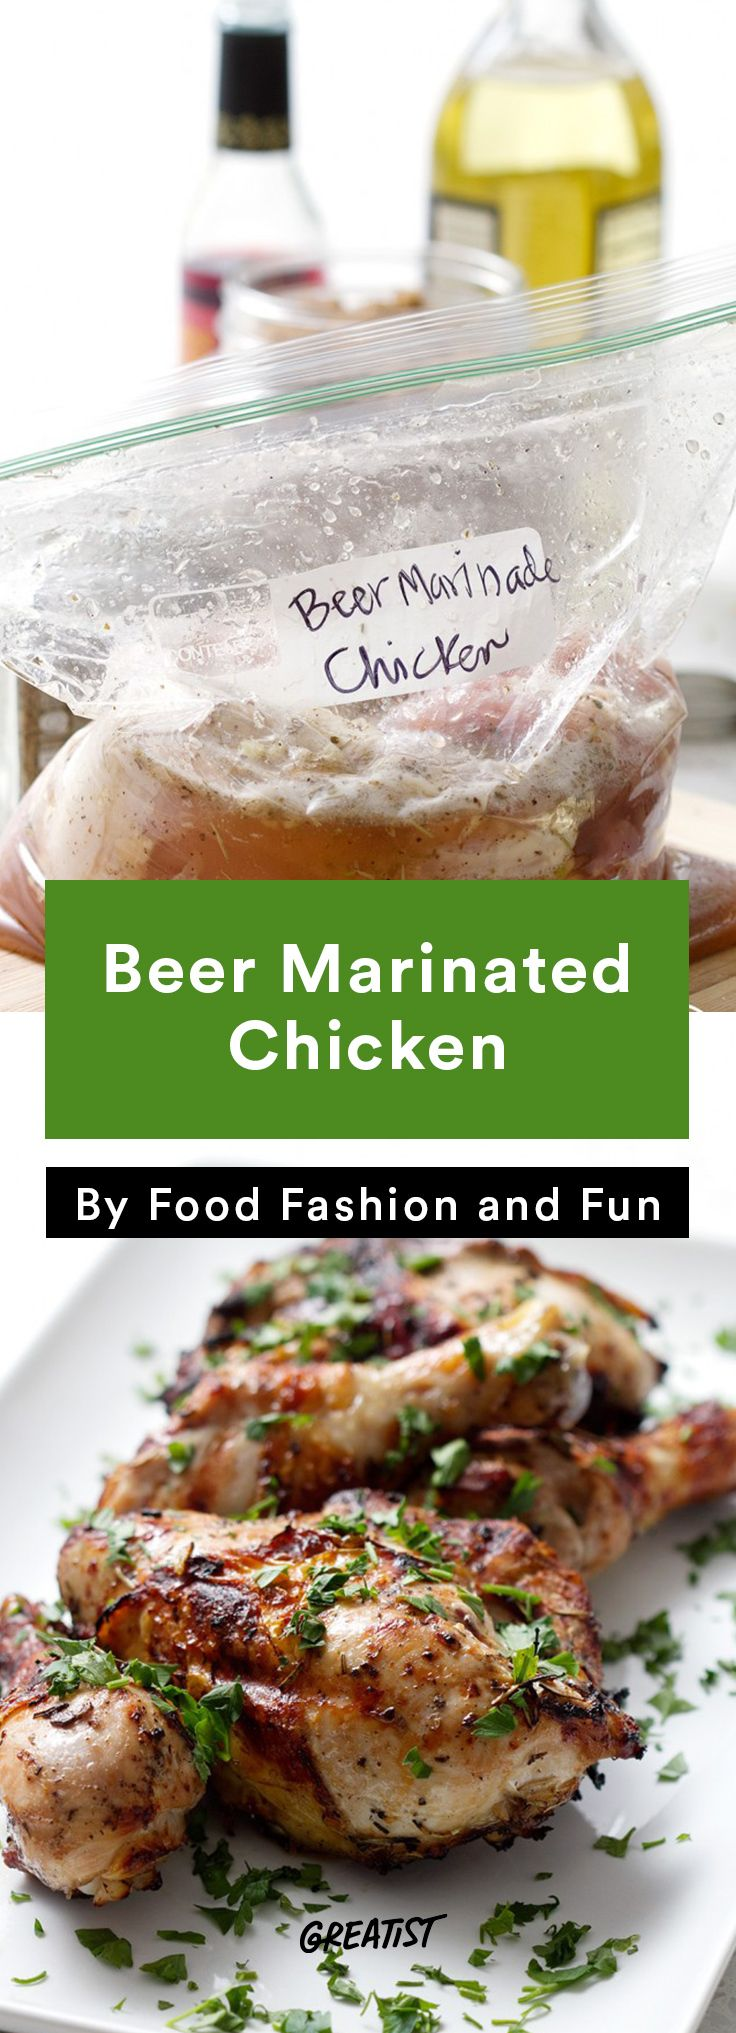 7. Beer-Marinated Chicken #healthy #beer #recipes http://greatist.com/eat/cooking-with-beer-recipes-to-always-have-on-tap